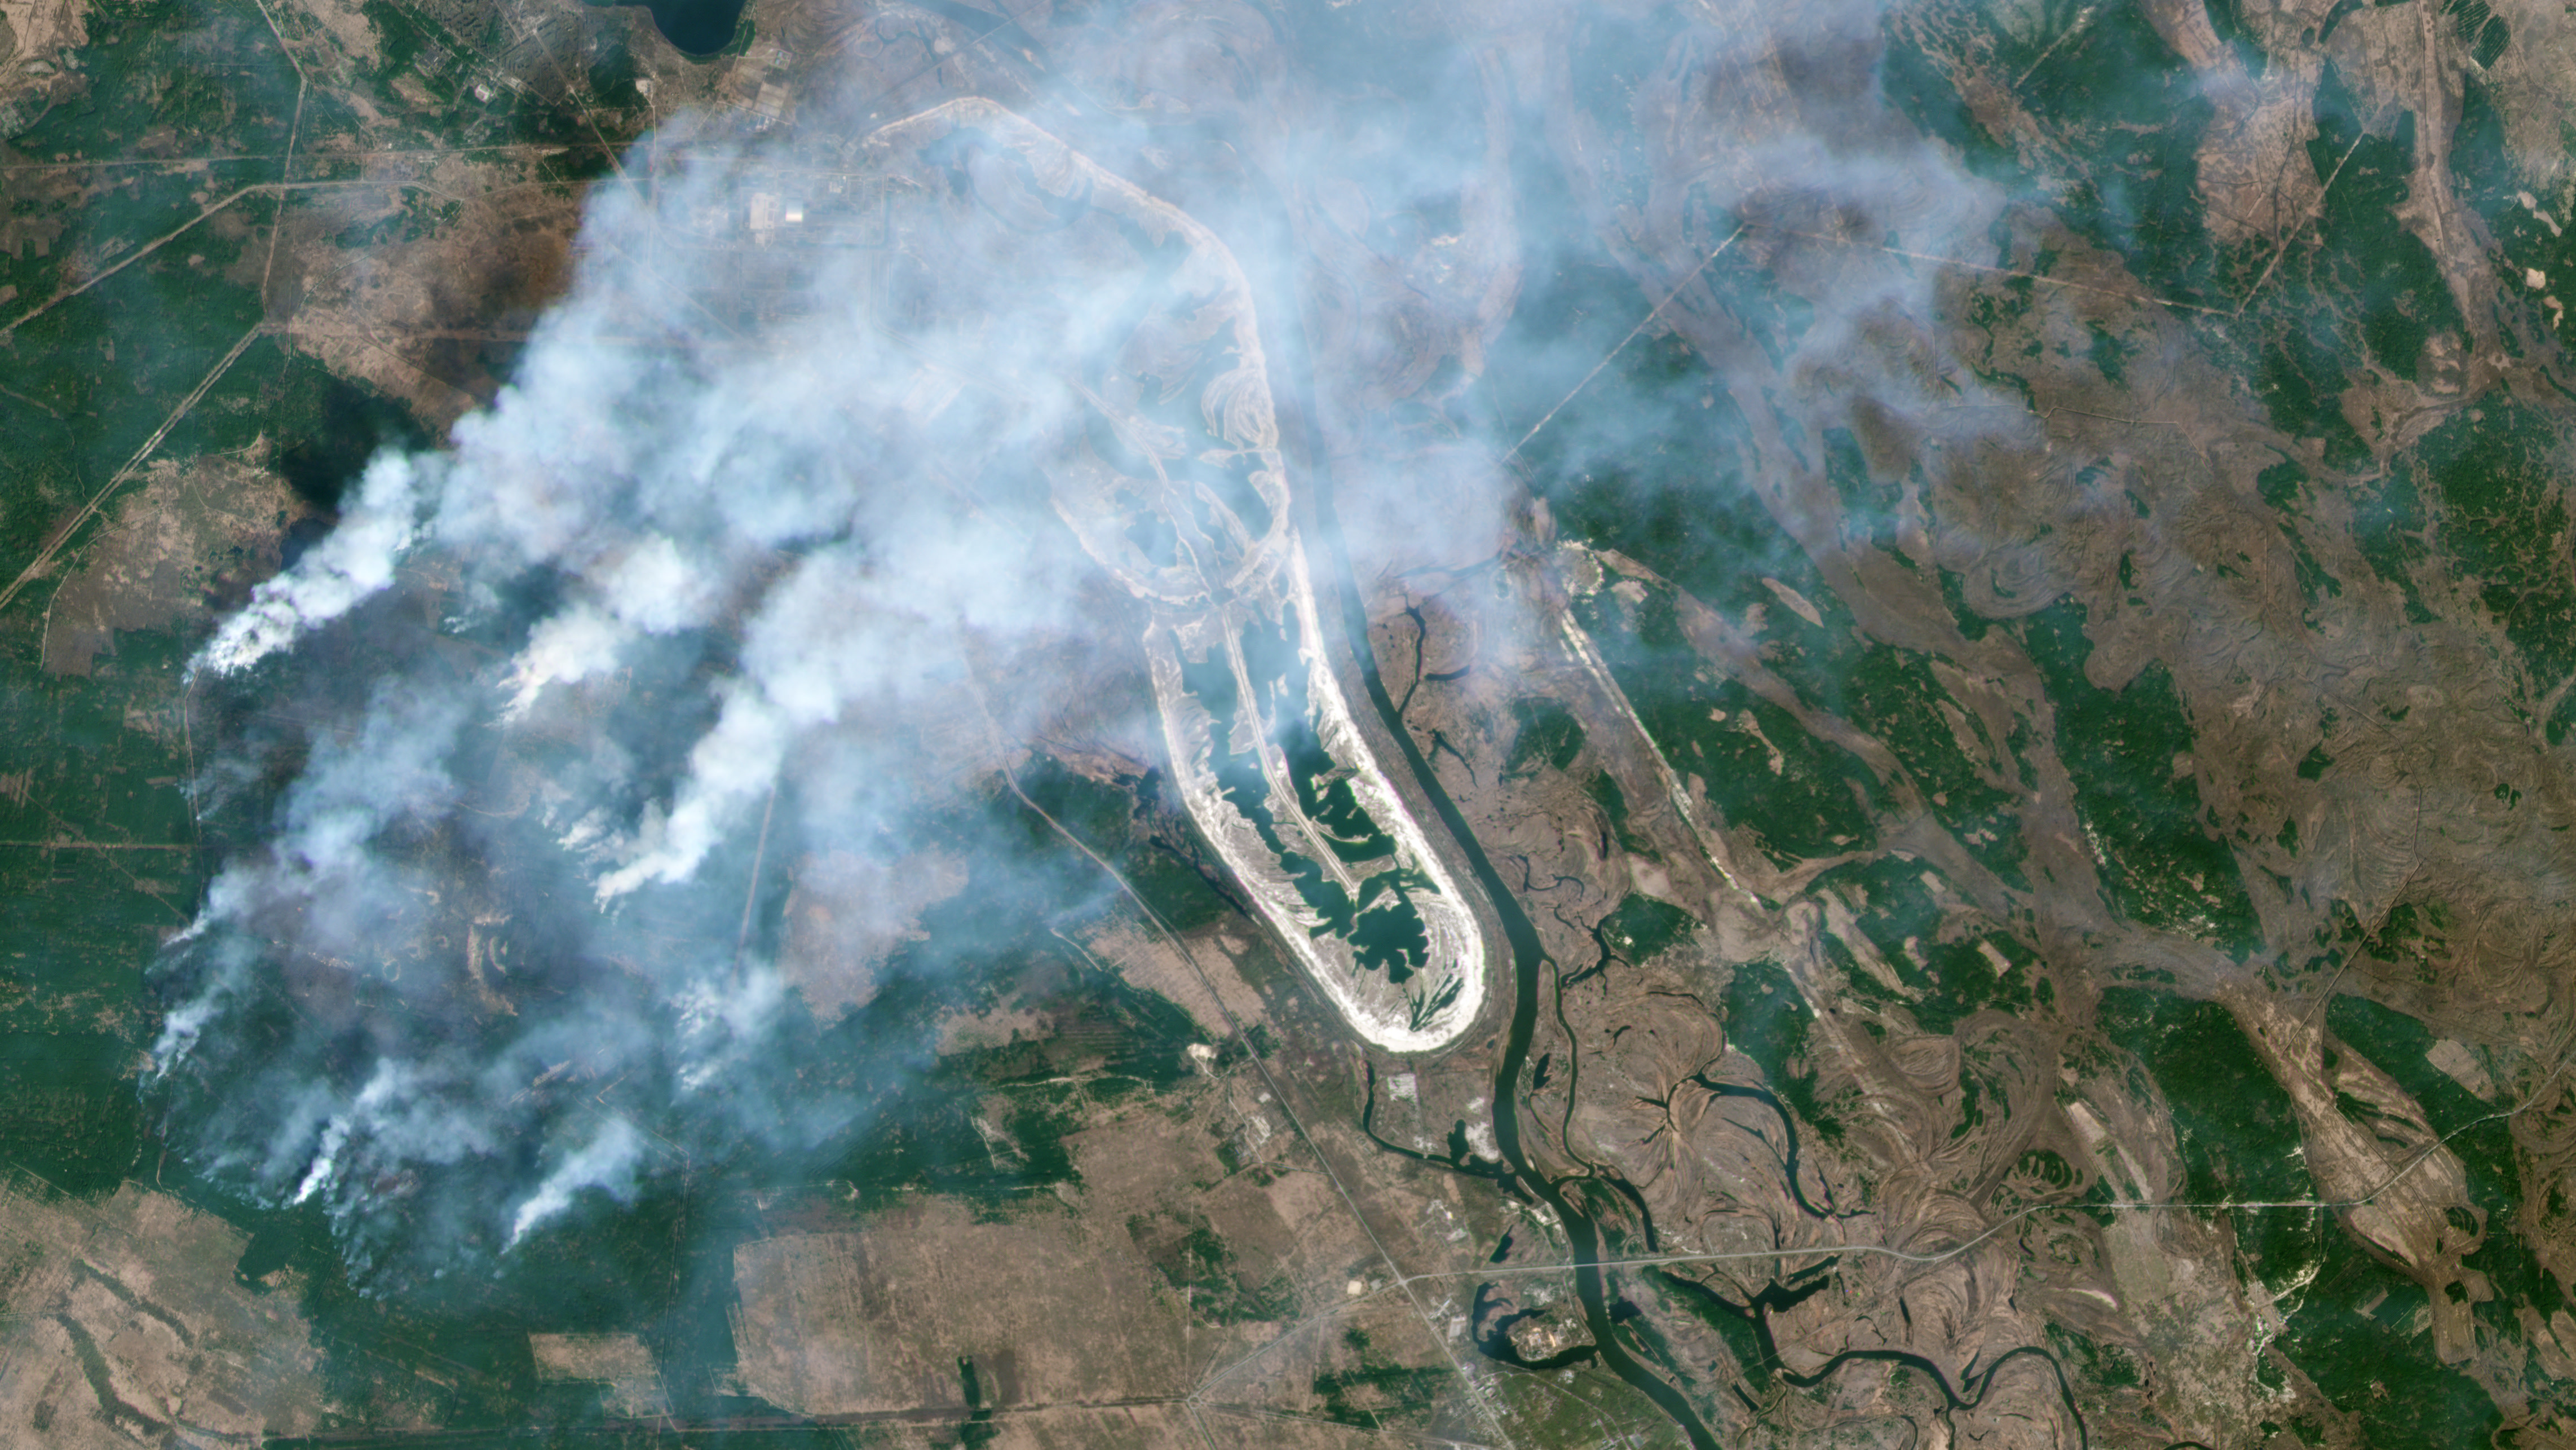 Planet imagery shows smoke plumes over the Chernobyl Nuclear Power Plant in the Ukraine © 2020, Planet Labs Inc. All Rights Reserved.